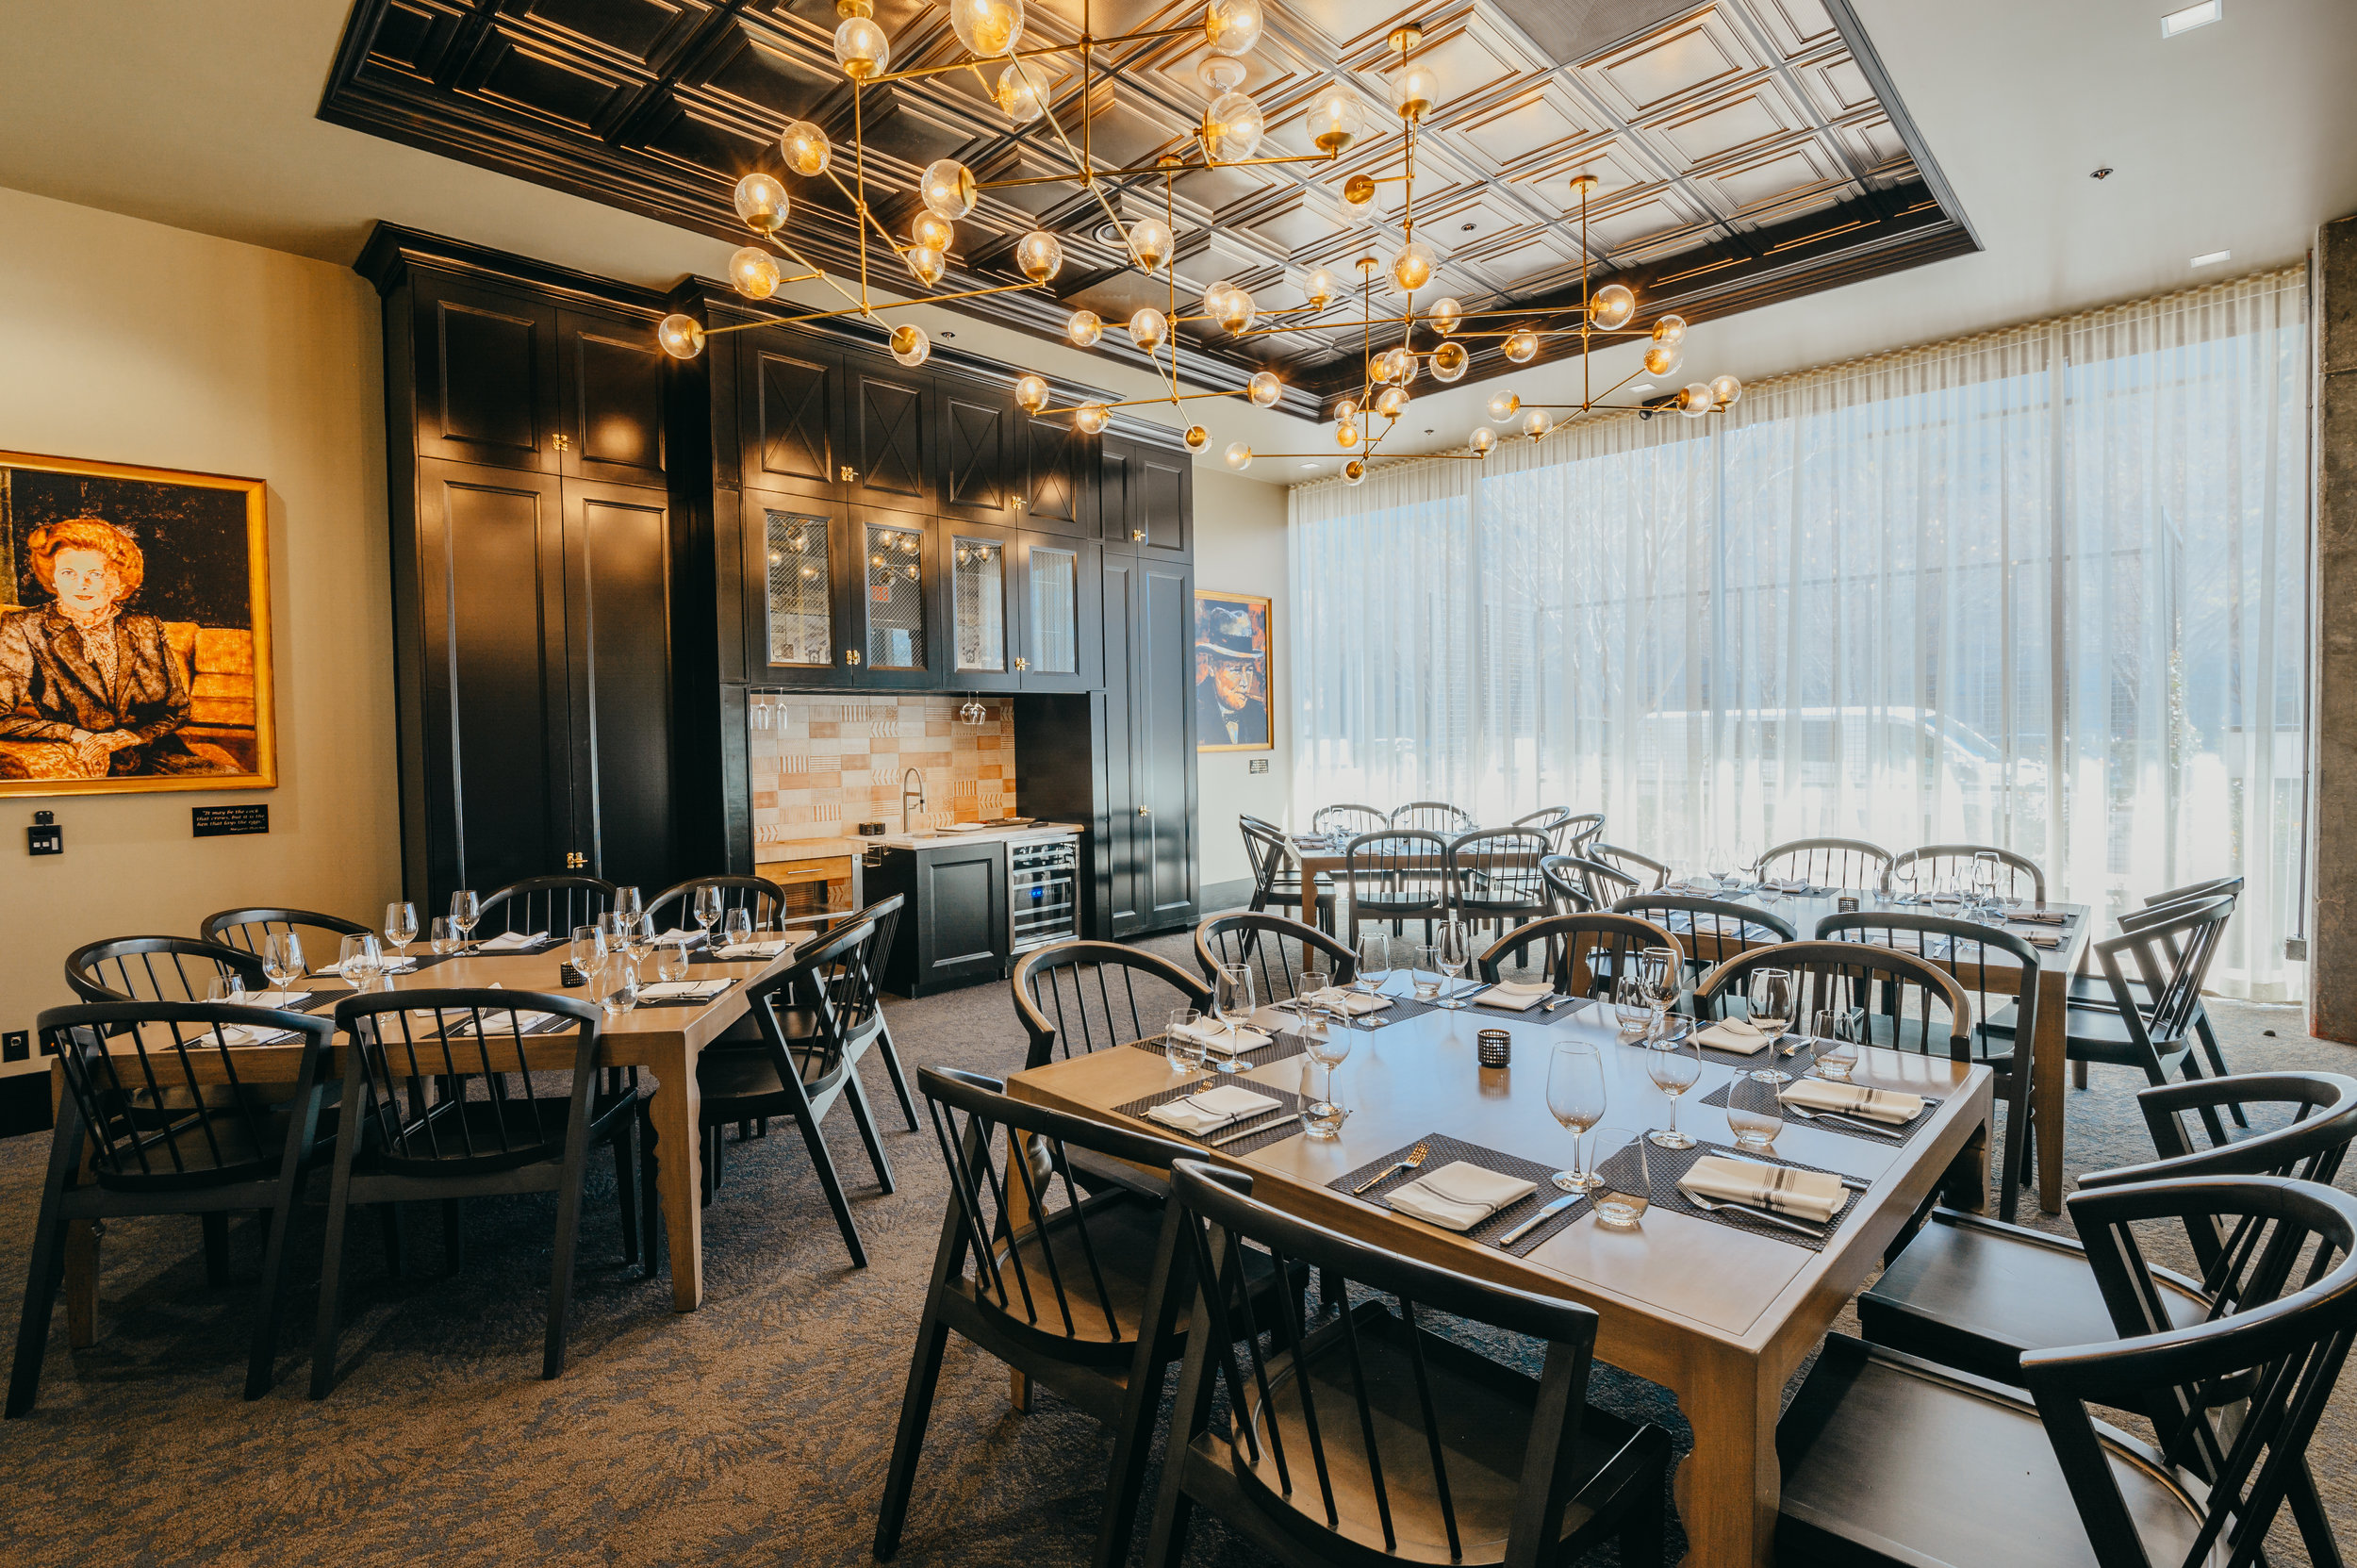 Reserve The Larder for your next private dining event. - Click here for more information about the Larder pricing and options.